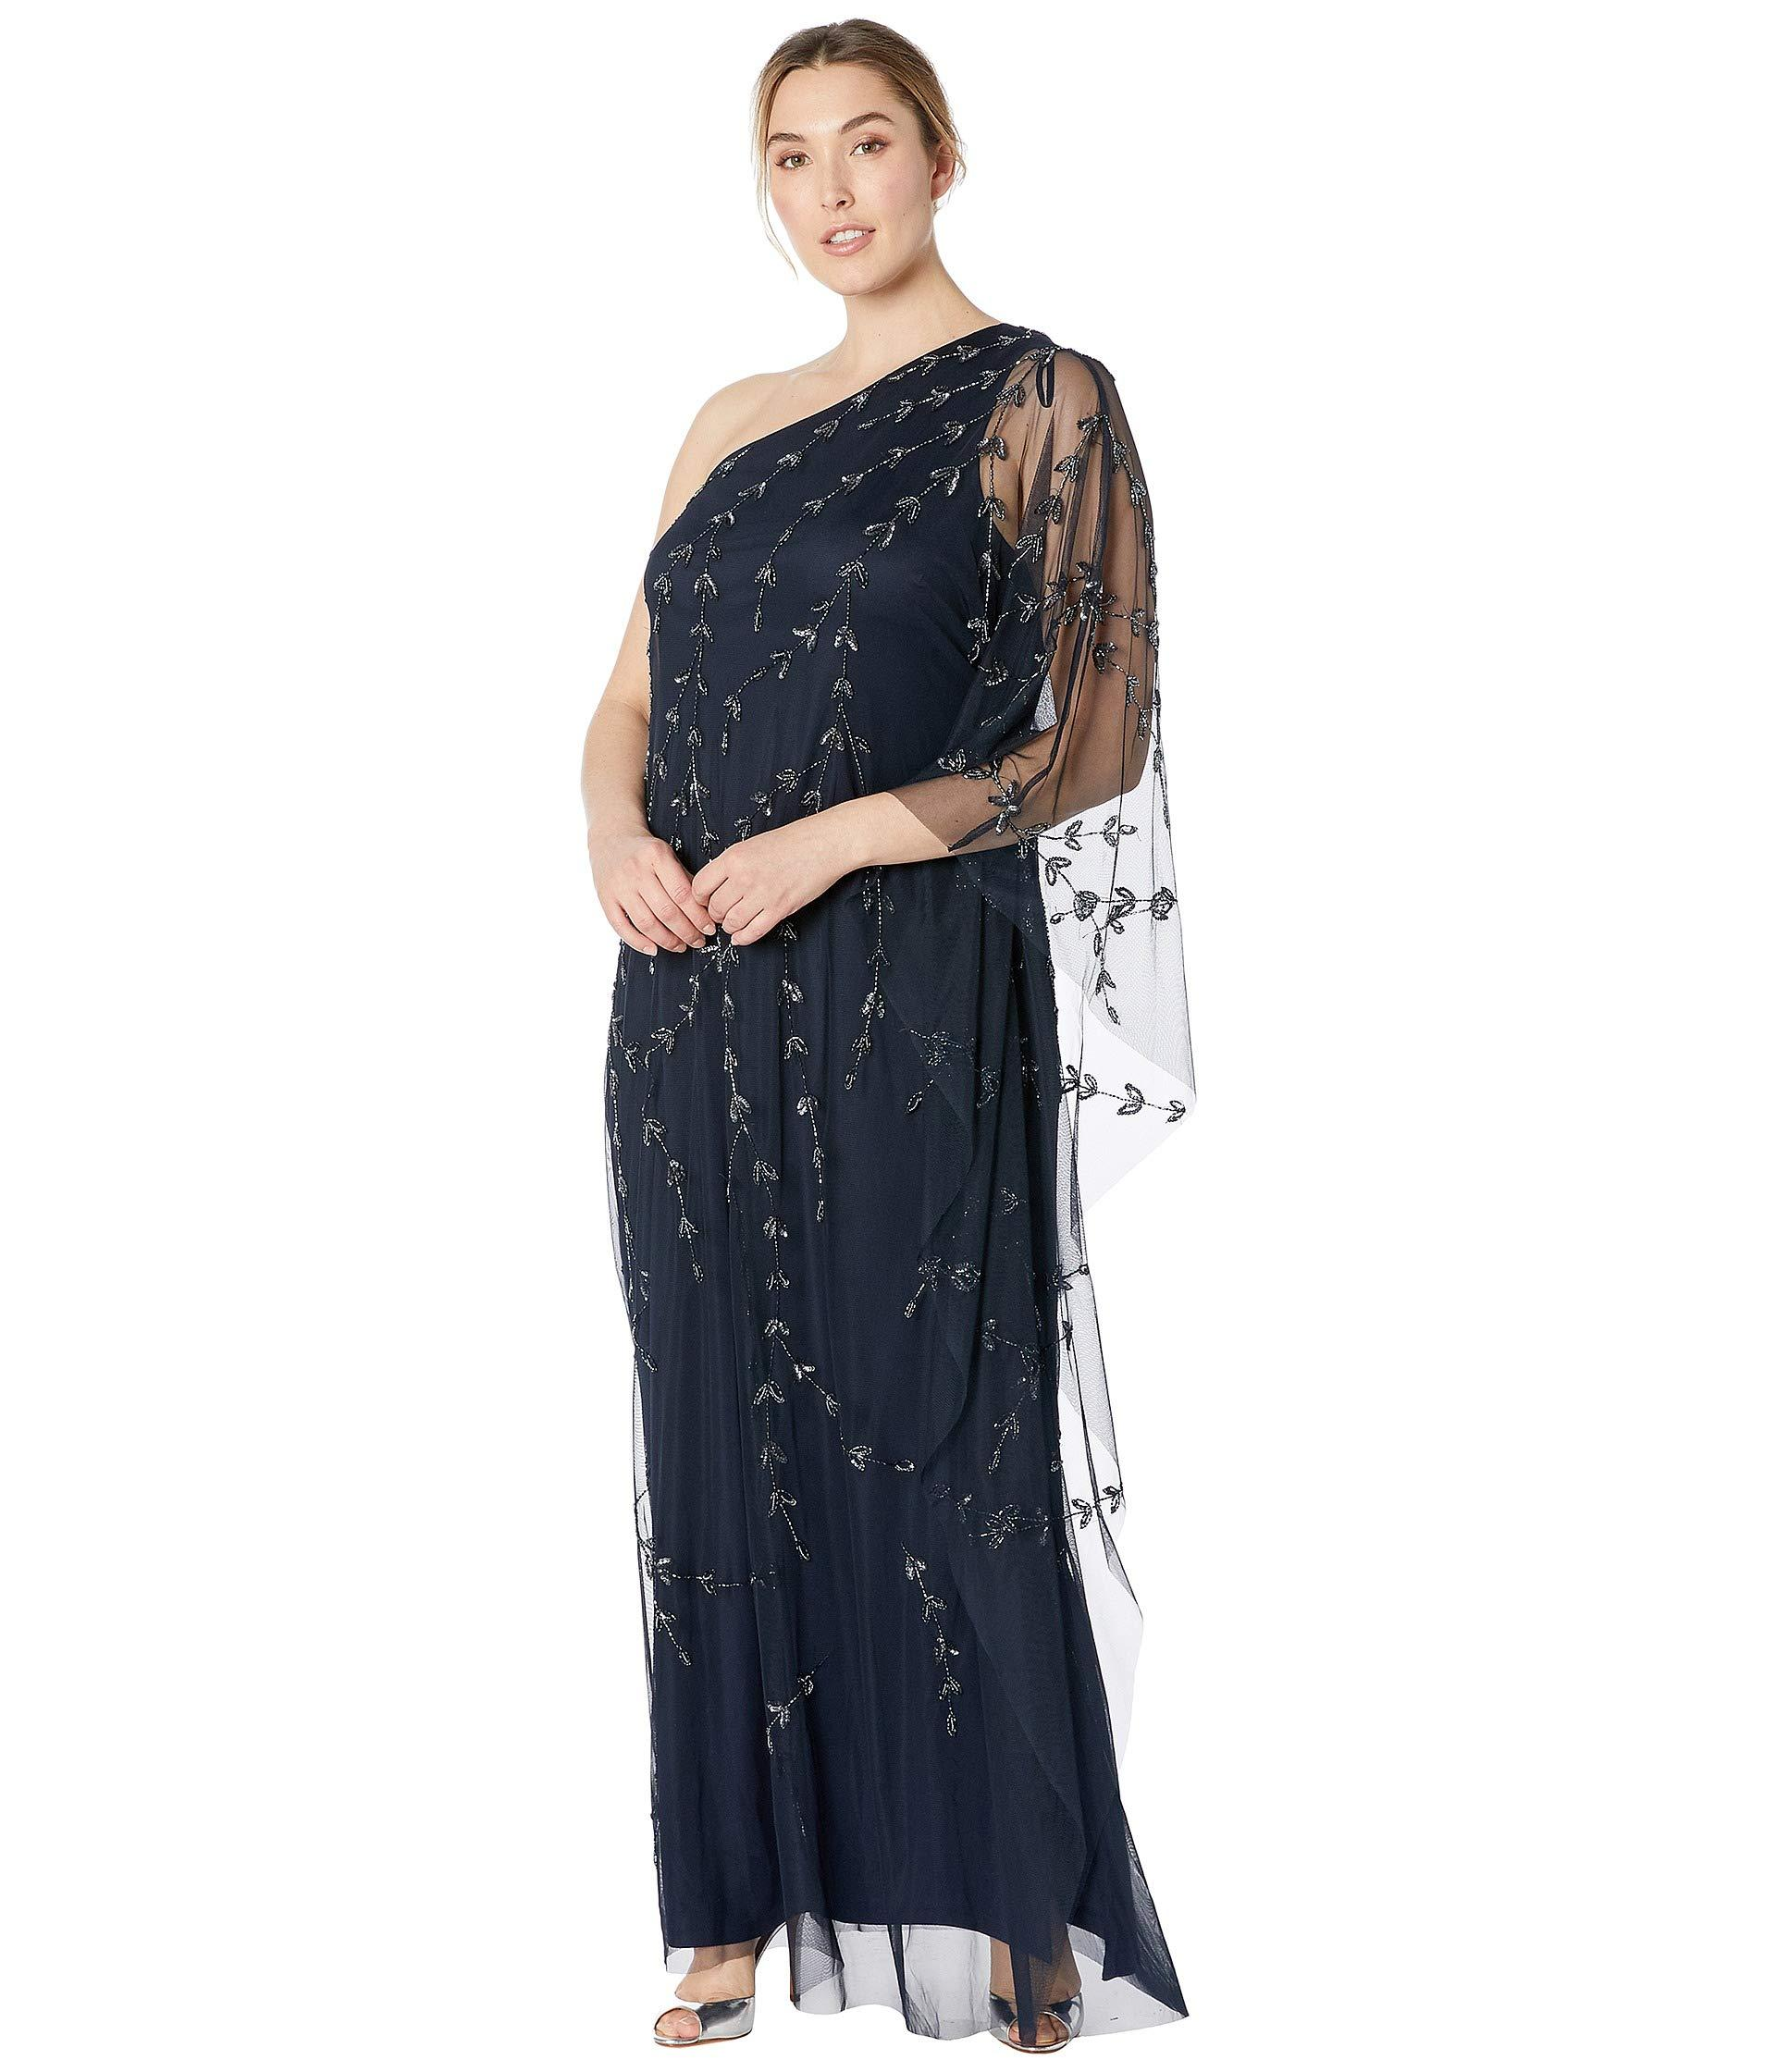 5cfa74c1a35 Lyst - Adrianna Papell Plus Size One Shoulder Beaded Kaftan Evening ...